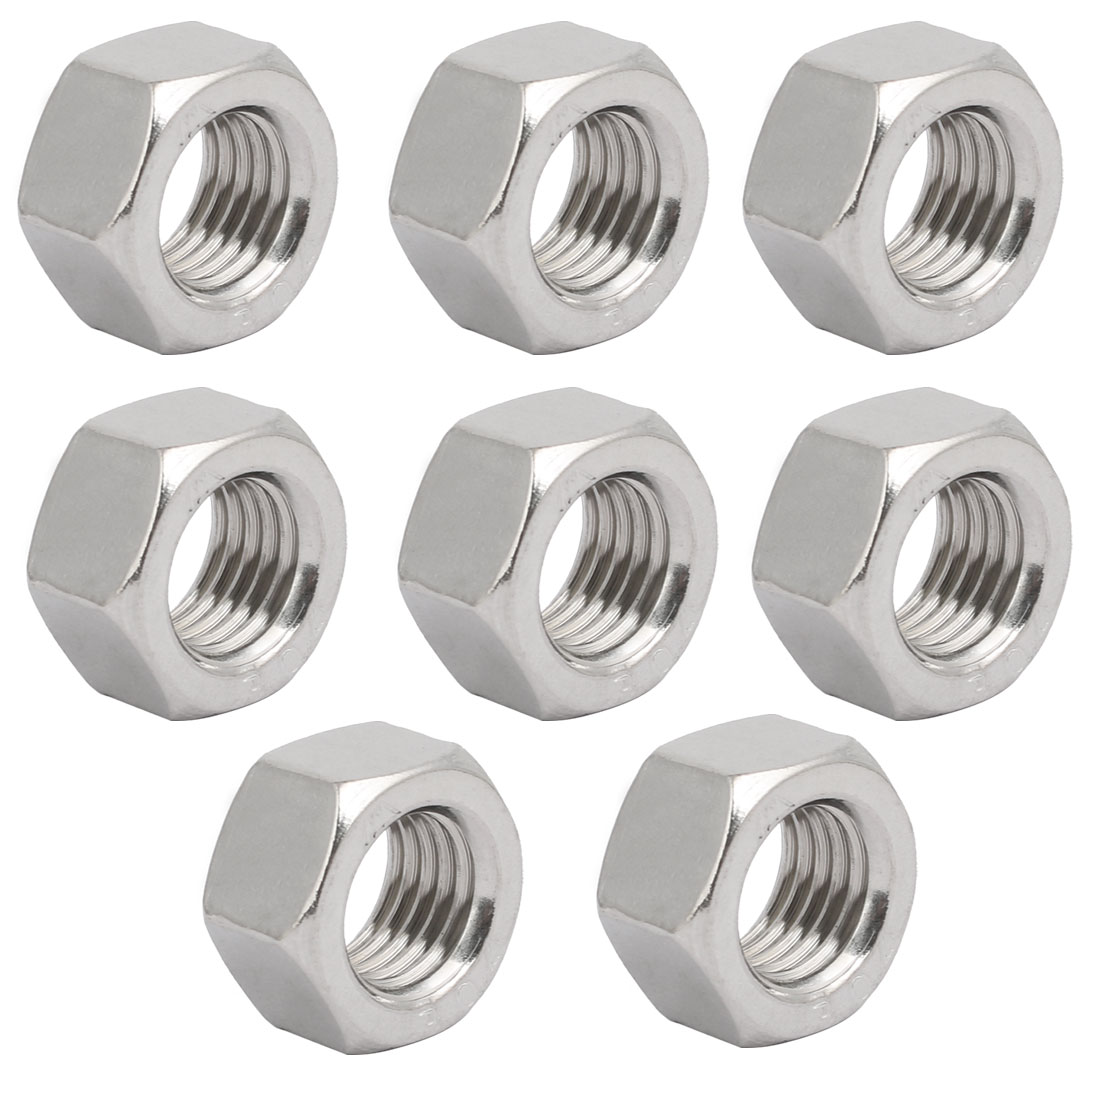 "8pcs 3/4""-10 BSW Thread 304 Stainless Steel Hex Nut Fastener Silver Tone"